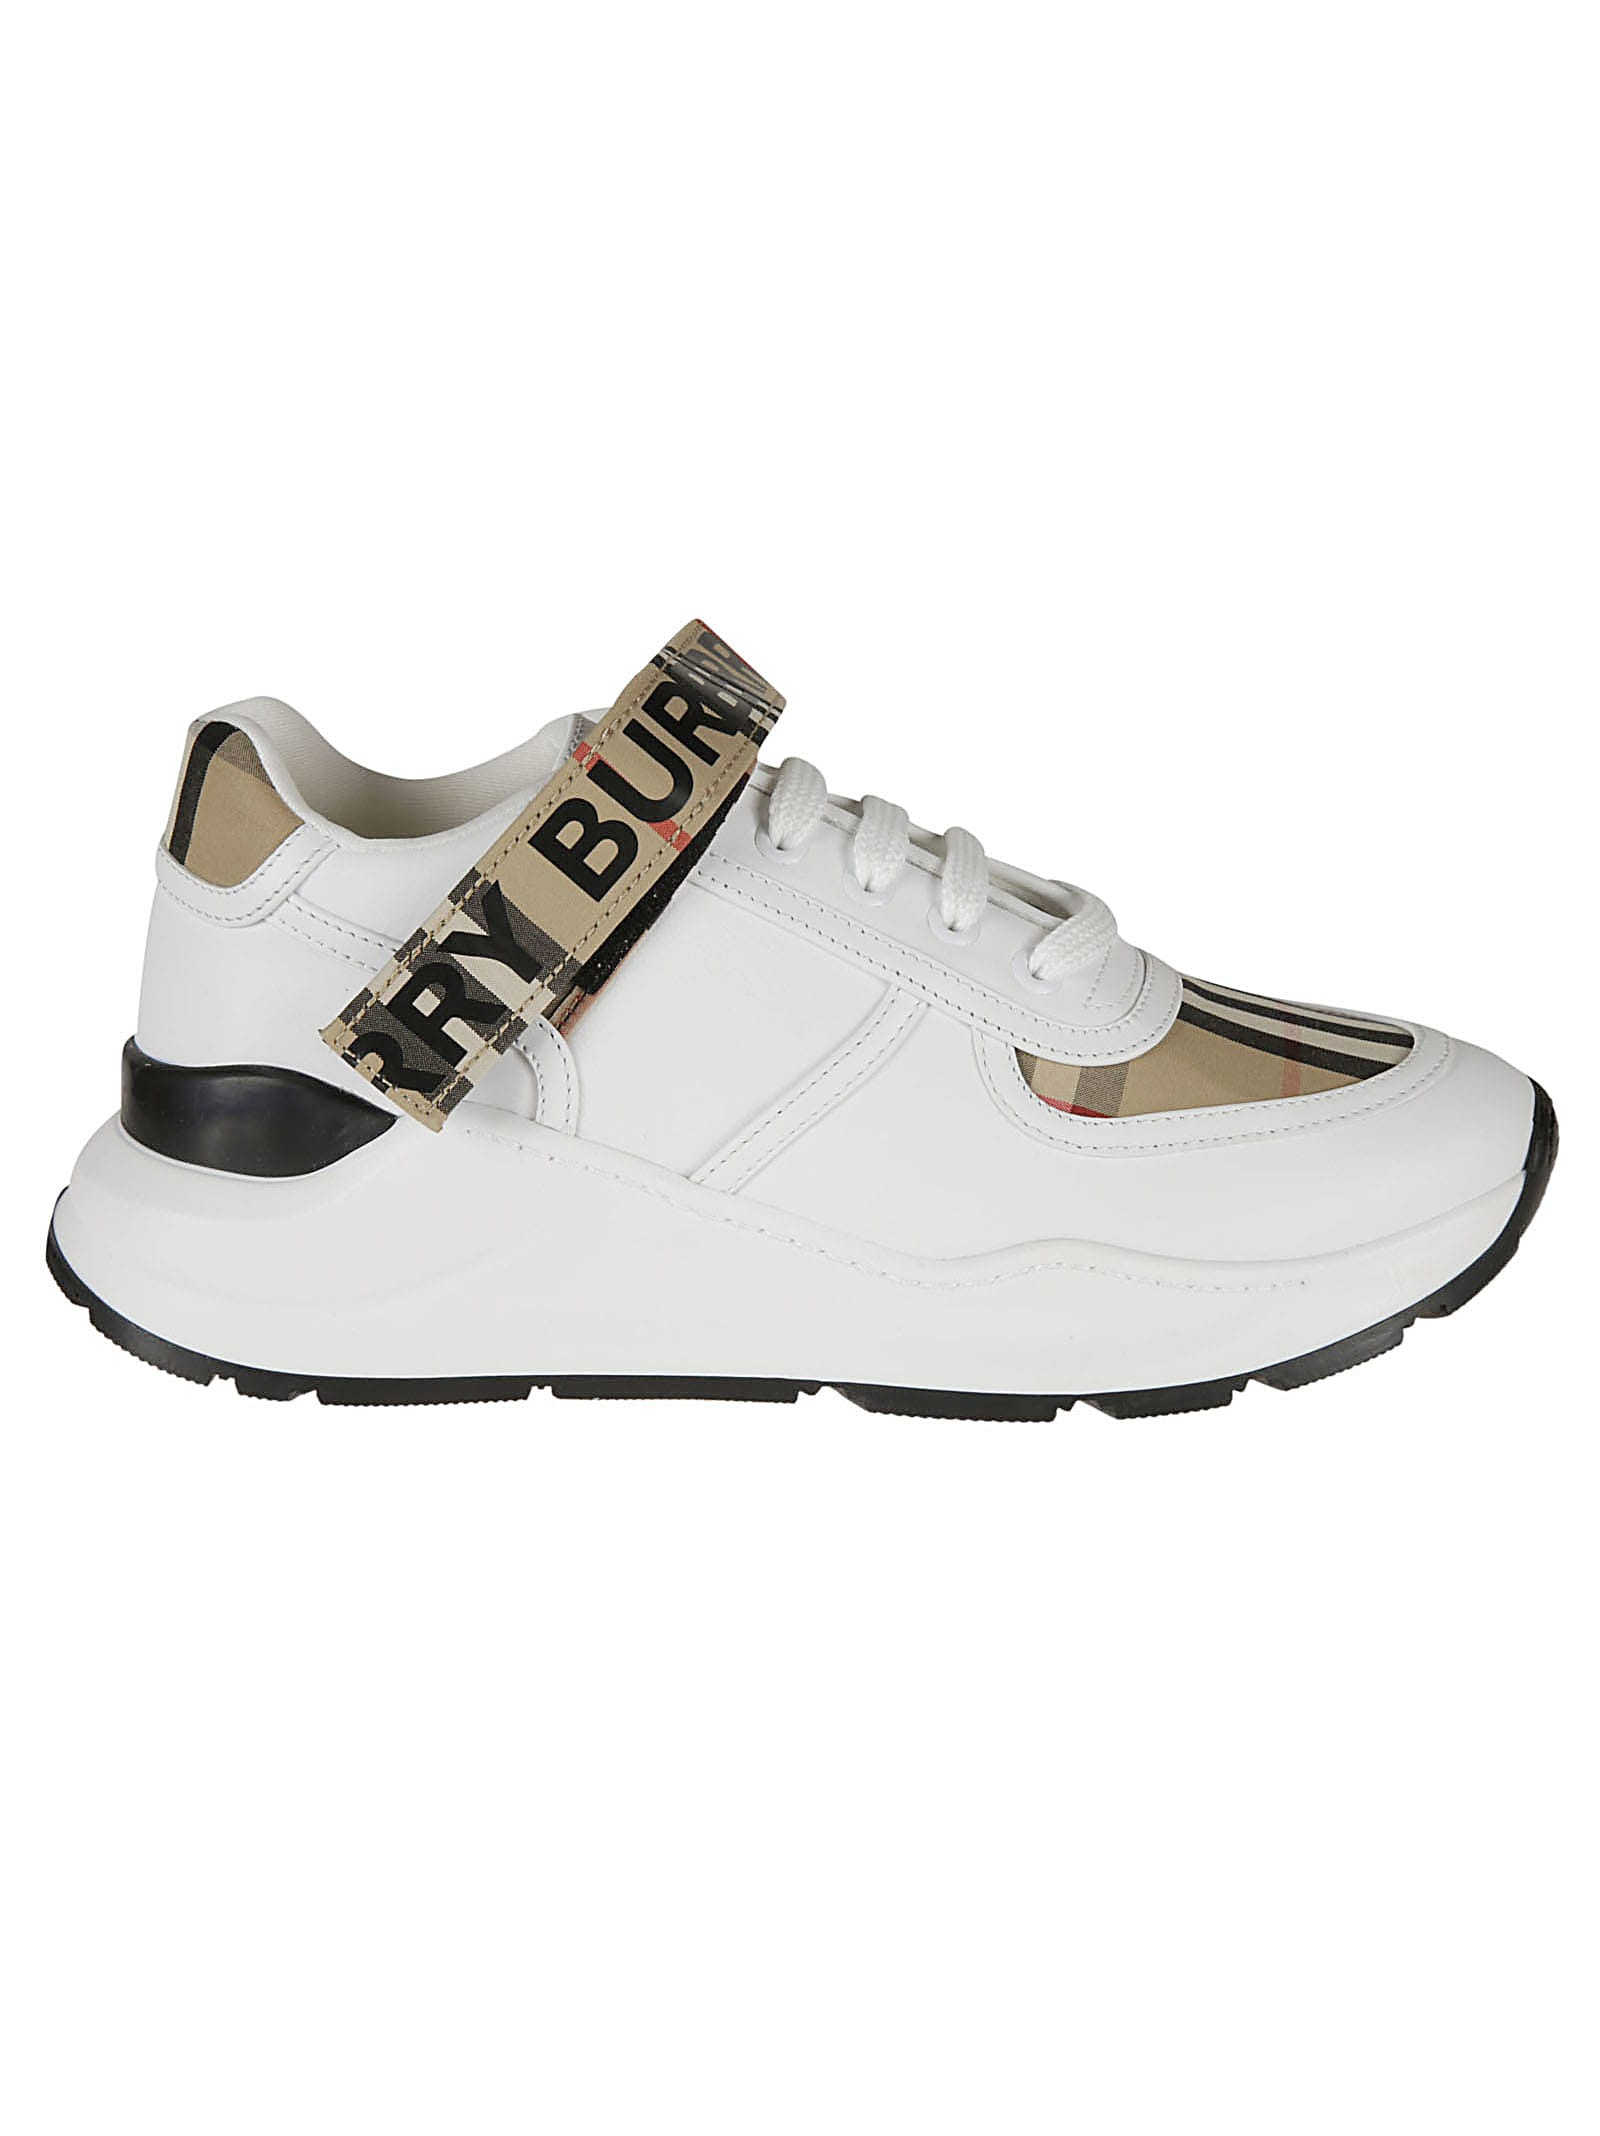 BURBERRY RONNIE LOW CHECK SNEAKERS